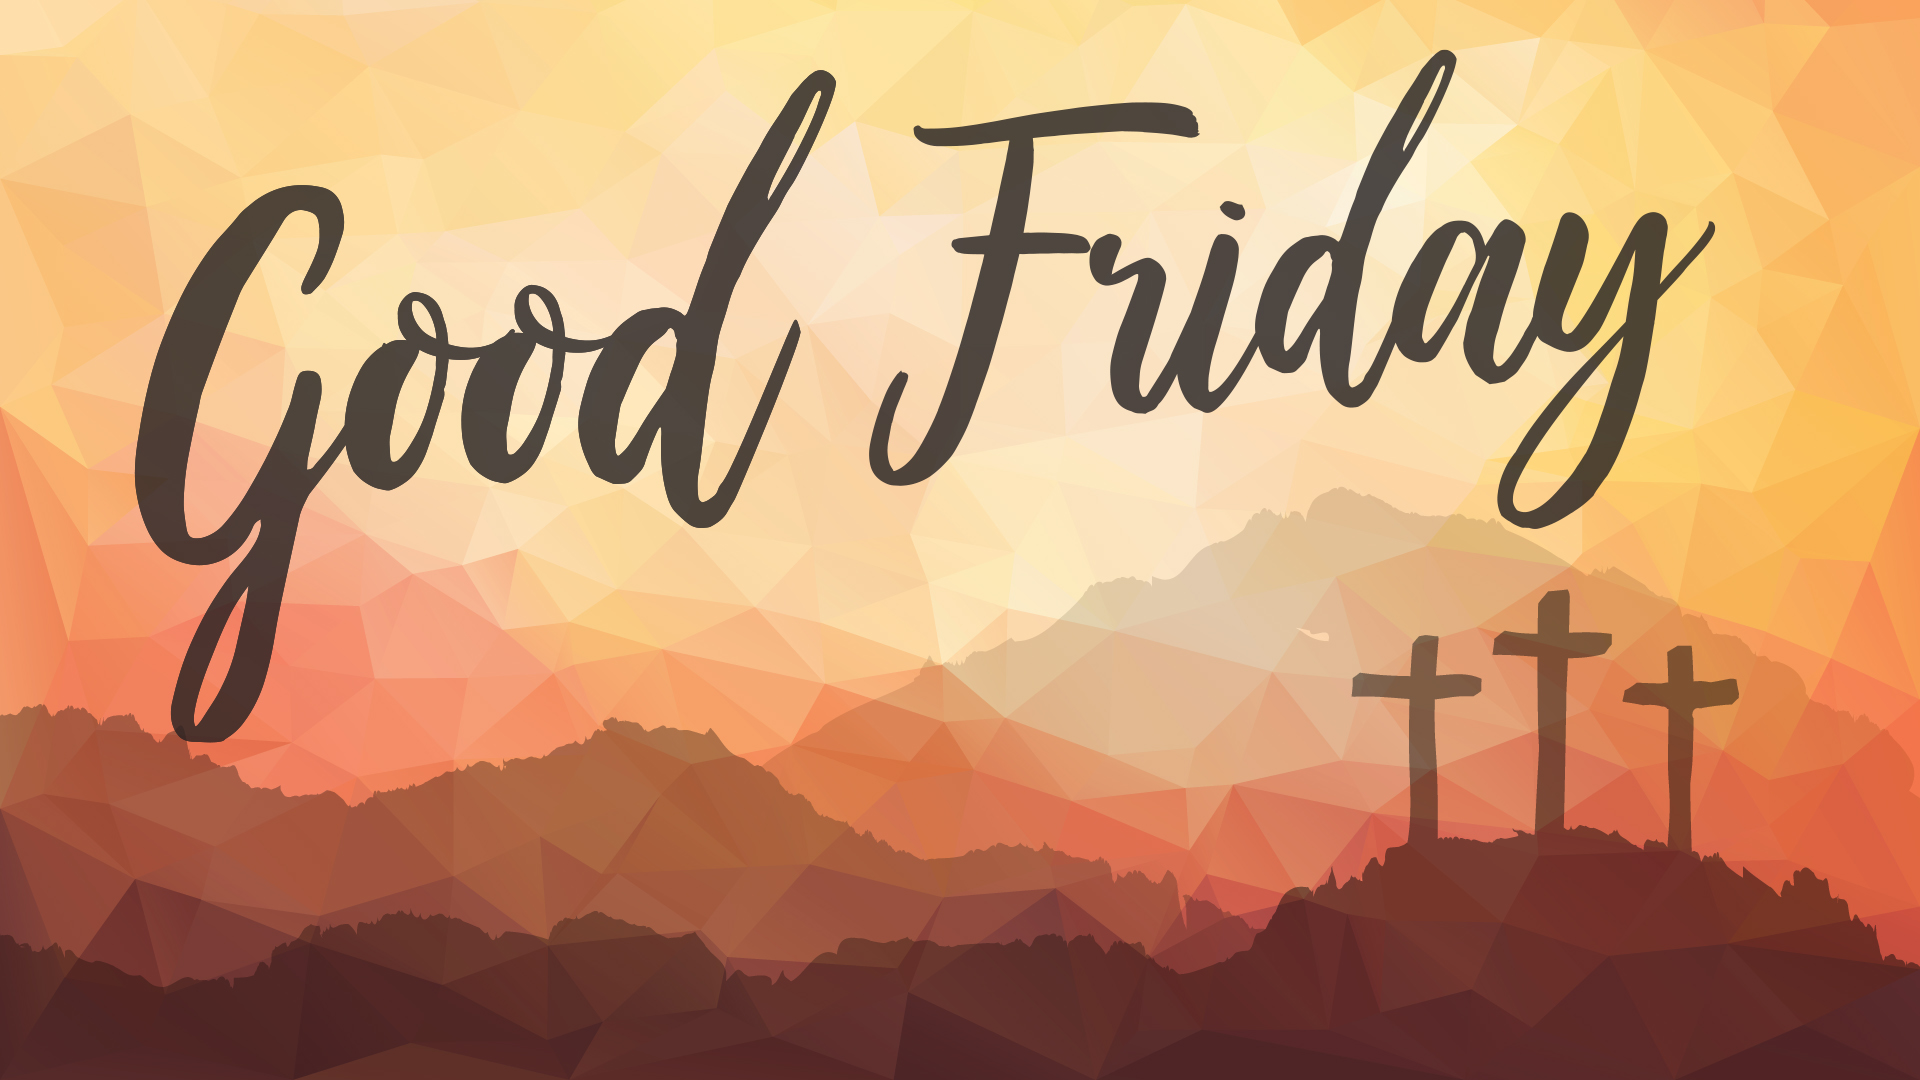 GoodFriday18_1080 image